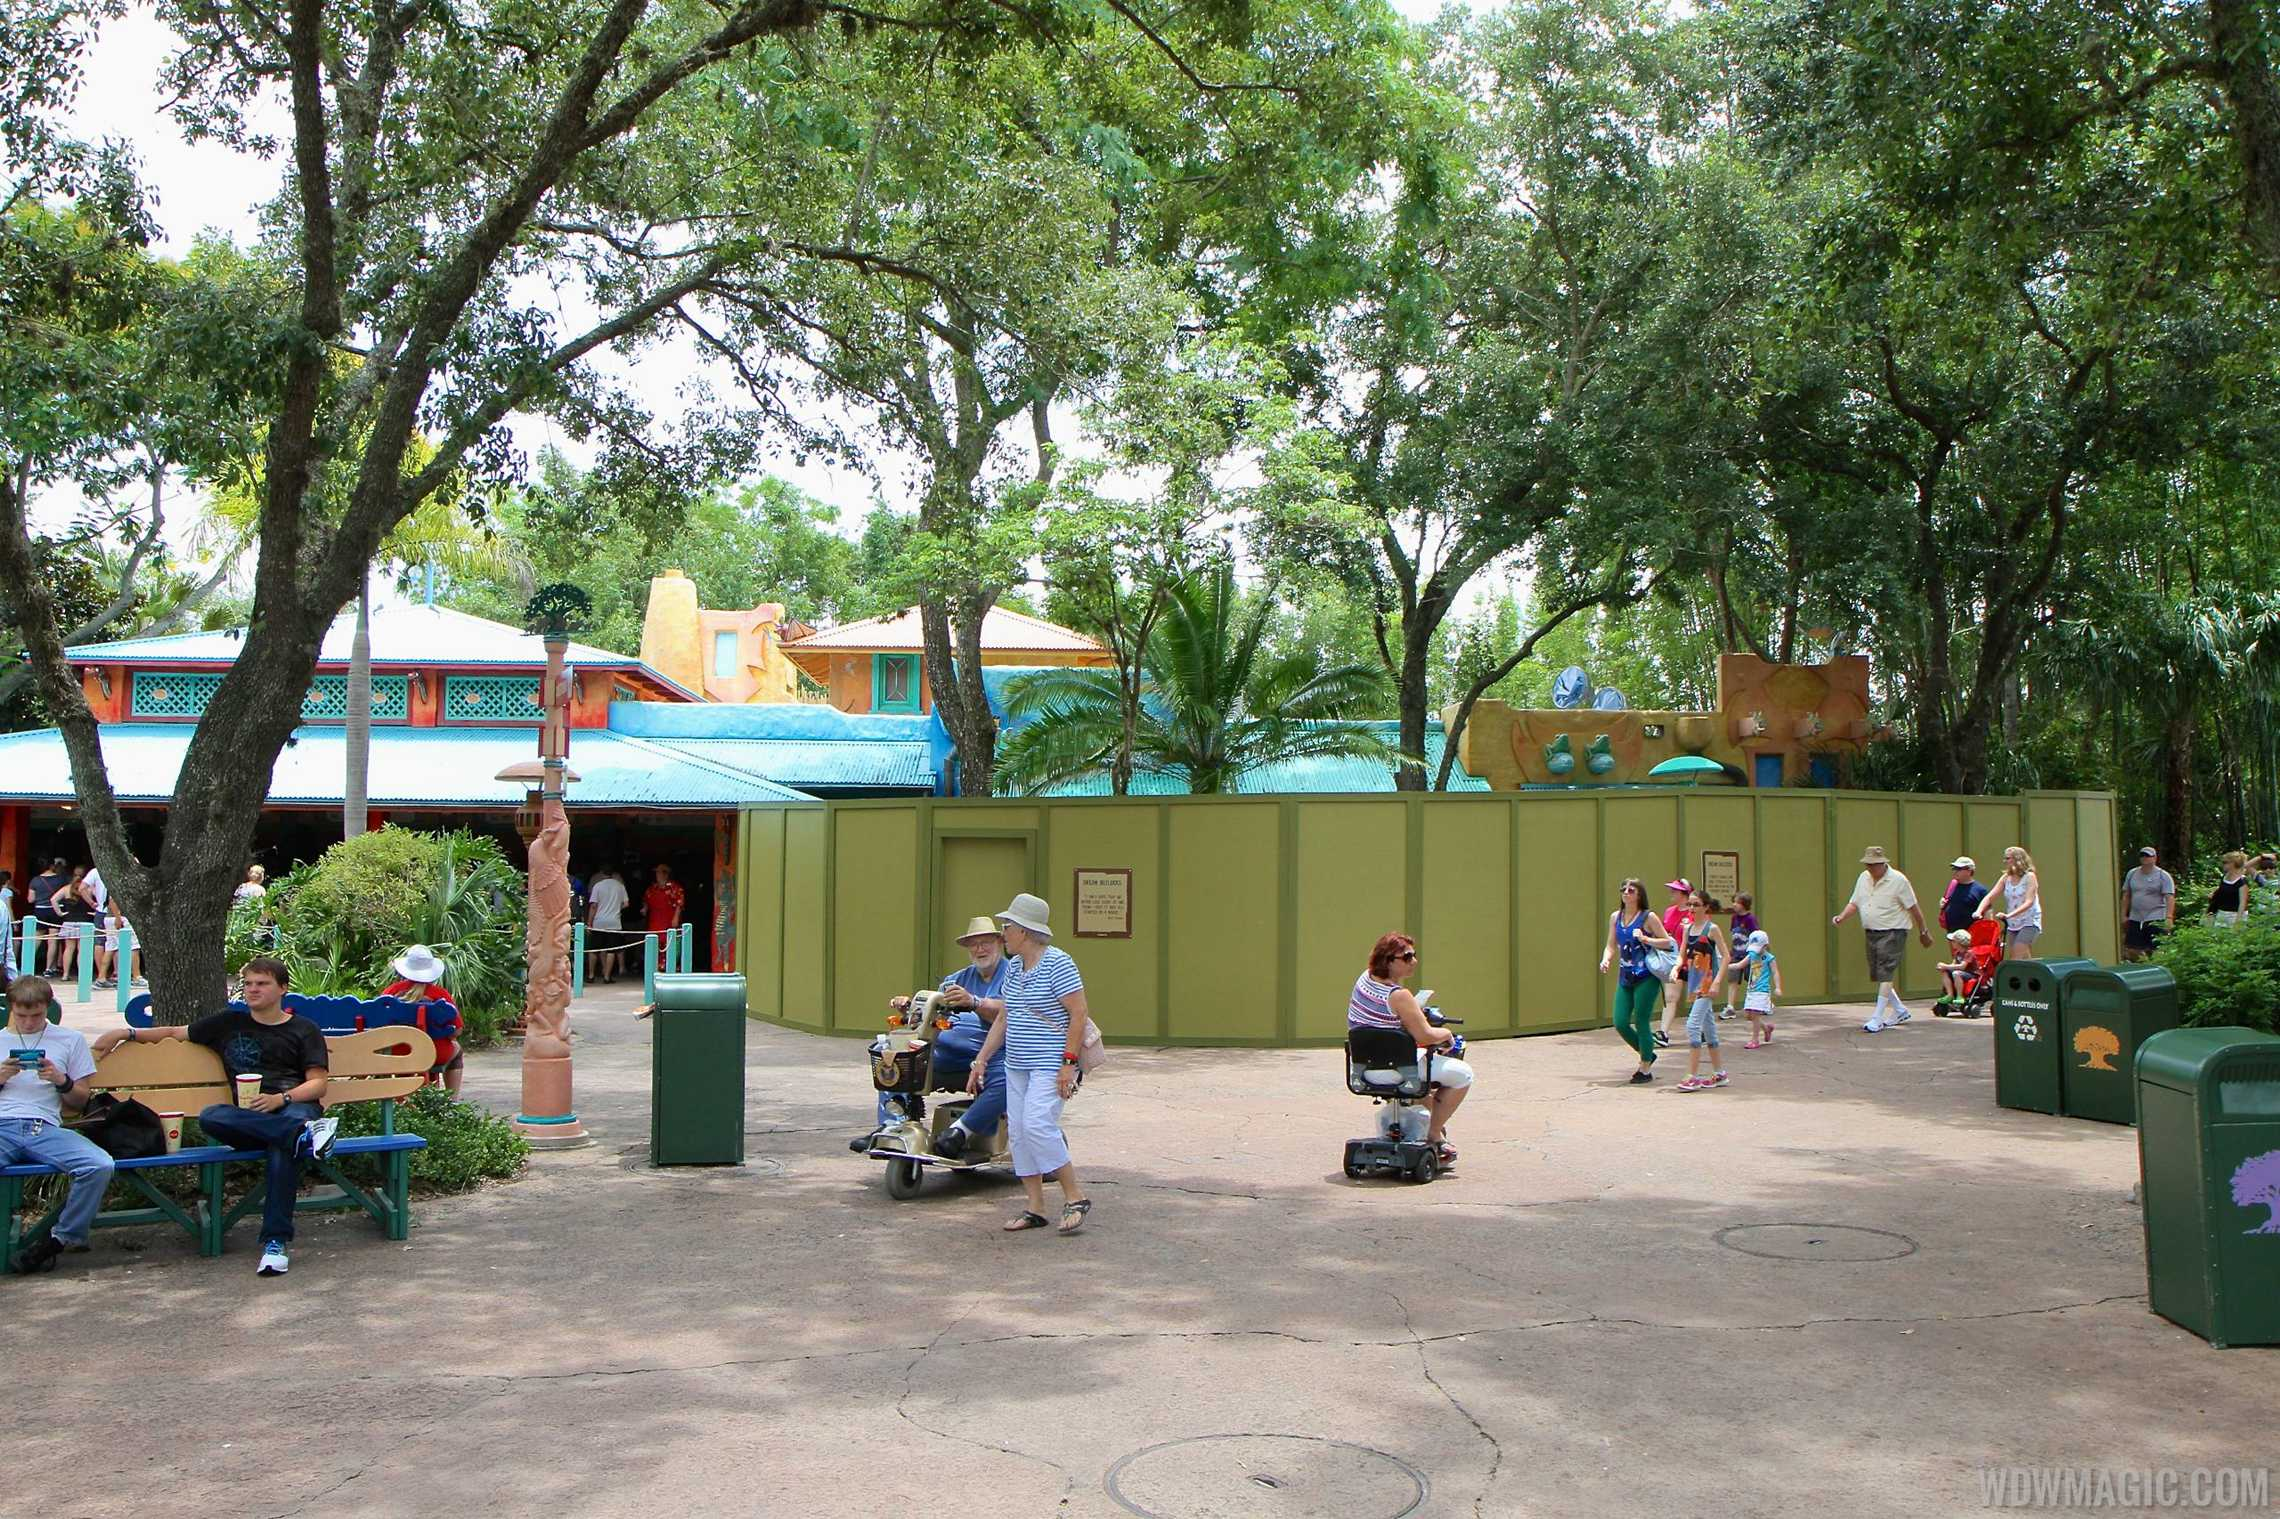 Coffee kiosk construction at Disney's Animal Kingdom